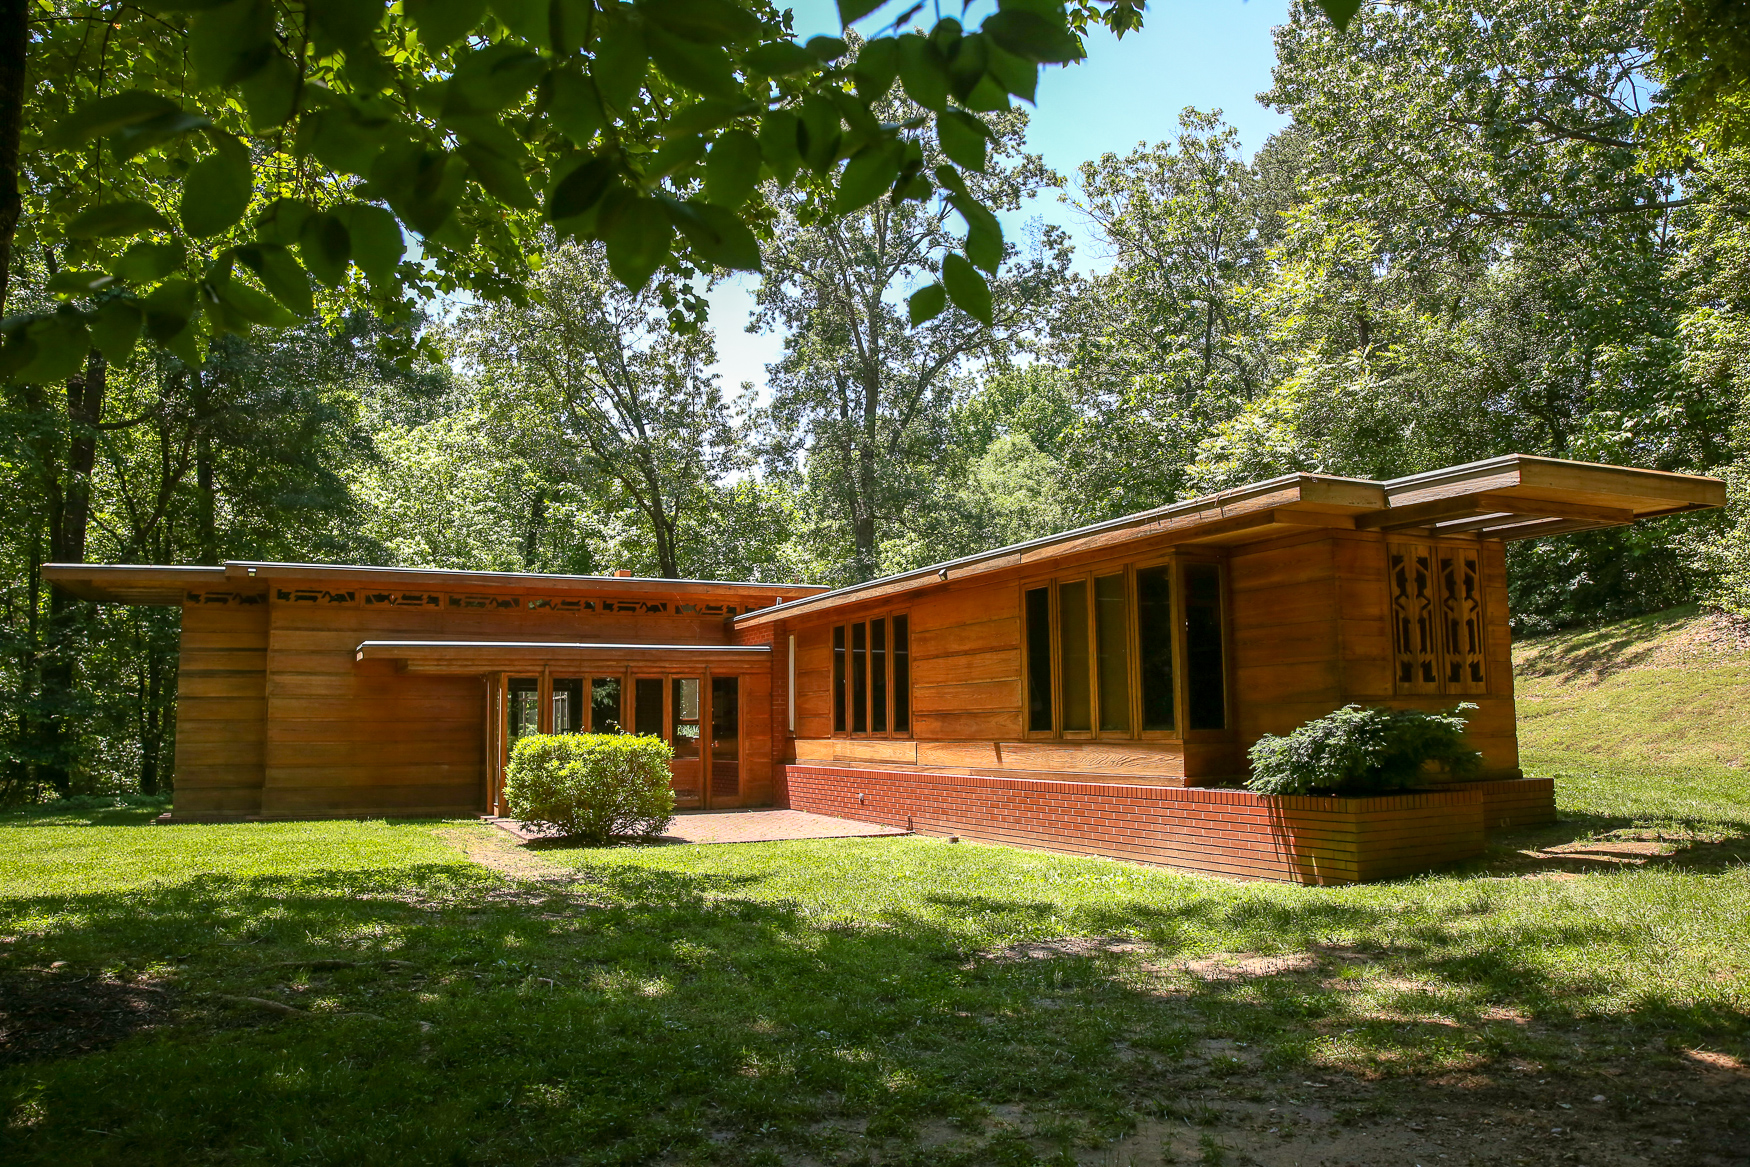 The{ }Pope-Leighey House, a site of the National Trust for Historic Preservation, was built by noted architect Frank Lloyd Wright. The house was commissioned by journalist Loren Pope in 1939, but later sold to Leighey family. The small home is shrouded by tall trees, but its wooded interior and huge windows make it feel like you're really living in the woods. The Pope-Leighey House is open to the public Friday through Monday, and the details are gorgeous enough to bring out the architecture nerd in all of us. (Amanda Andrade-Rhoades/DC Refined)